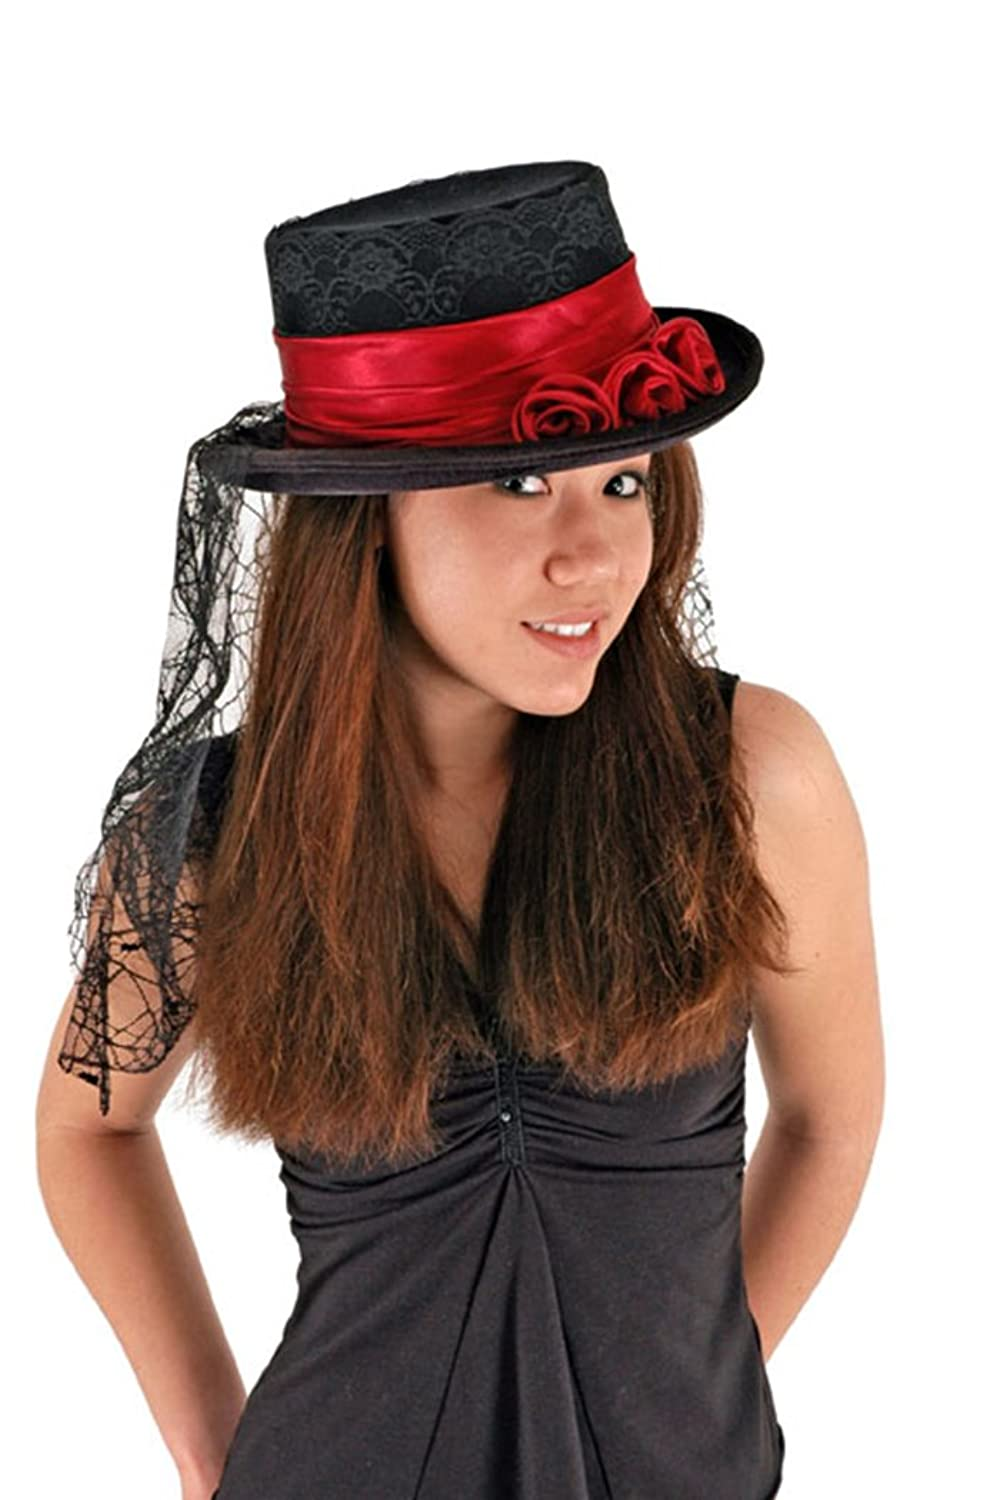 Elope Gothic Rose Top Hat - Black and Red with Scarf